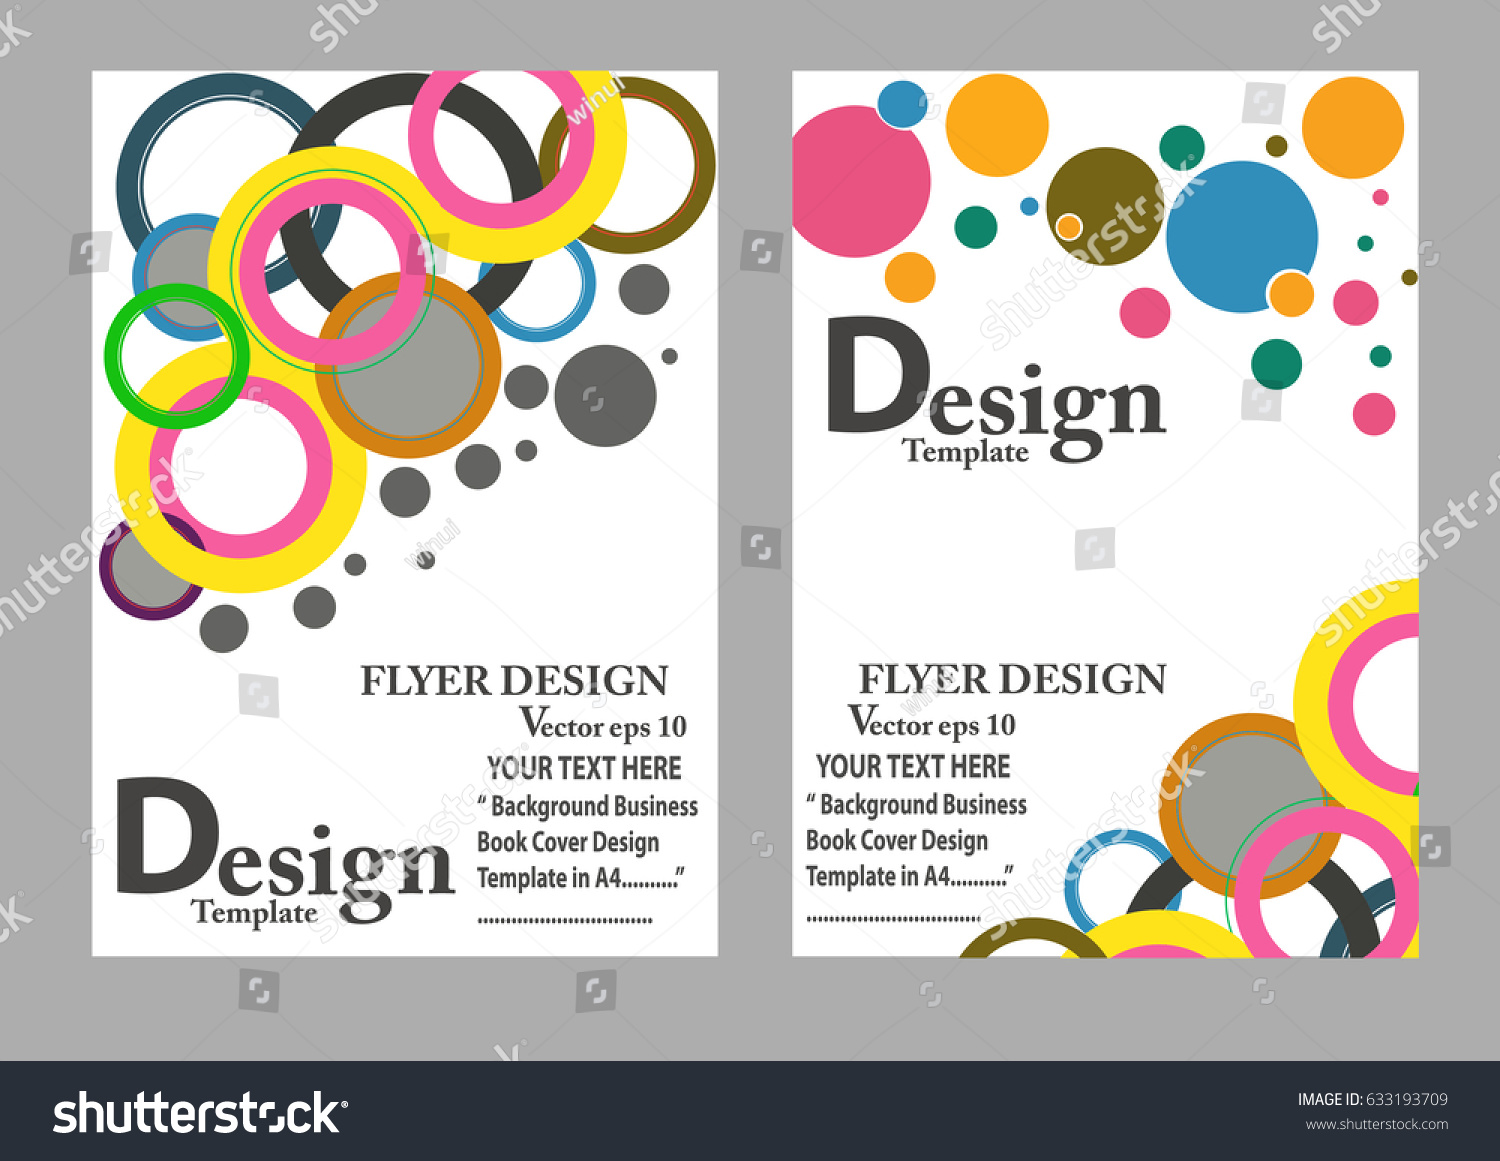 Geographics business cards templates mandegarfo geographics business cards templates wajeb Choice Image